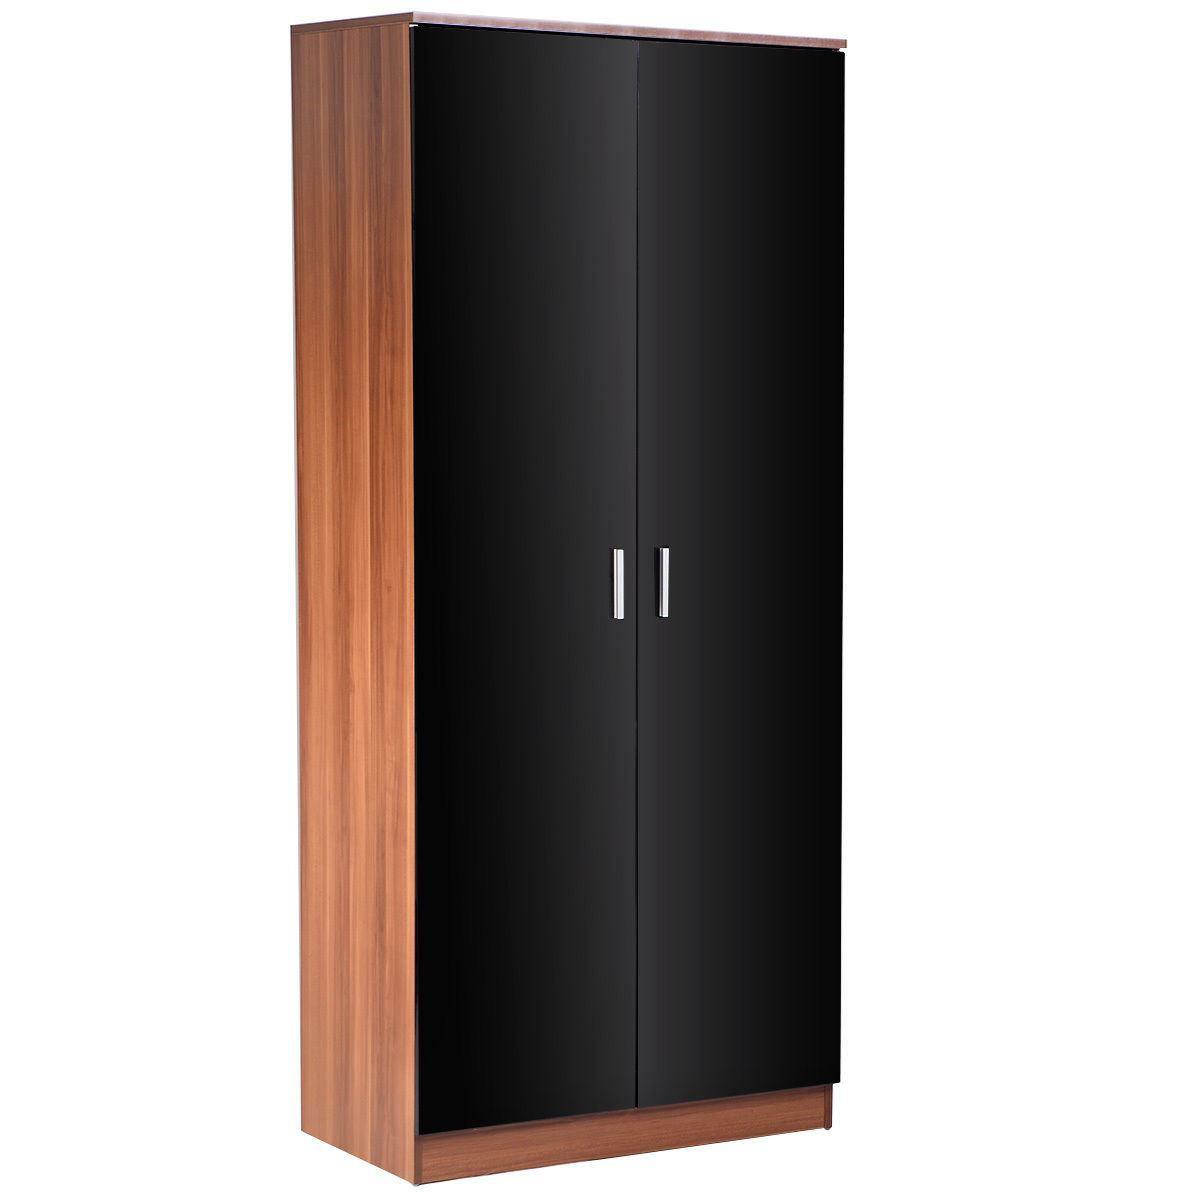 Picture of Trio Bedroom Furniture Set High Gloss 2 Door Wardrobe, Chest, and Bedside 3 Piece - Black